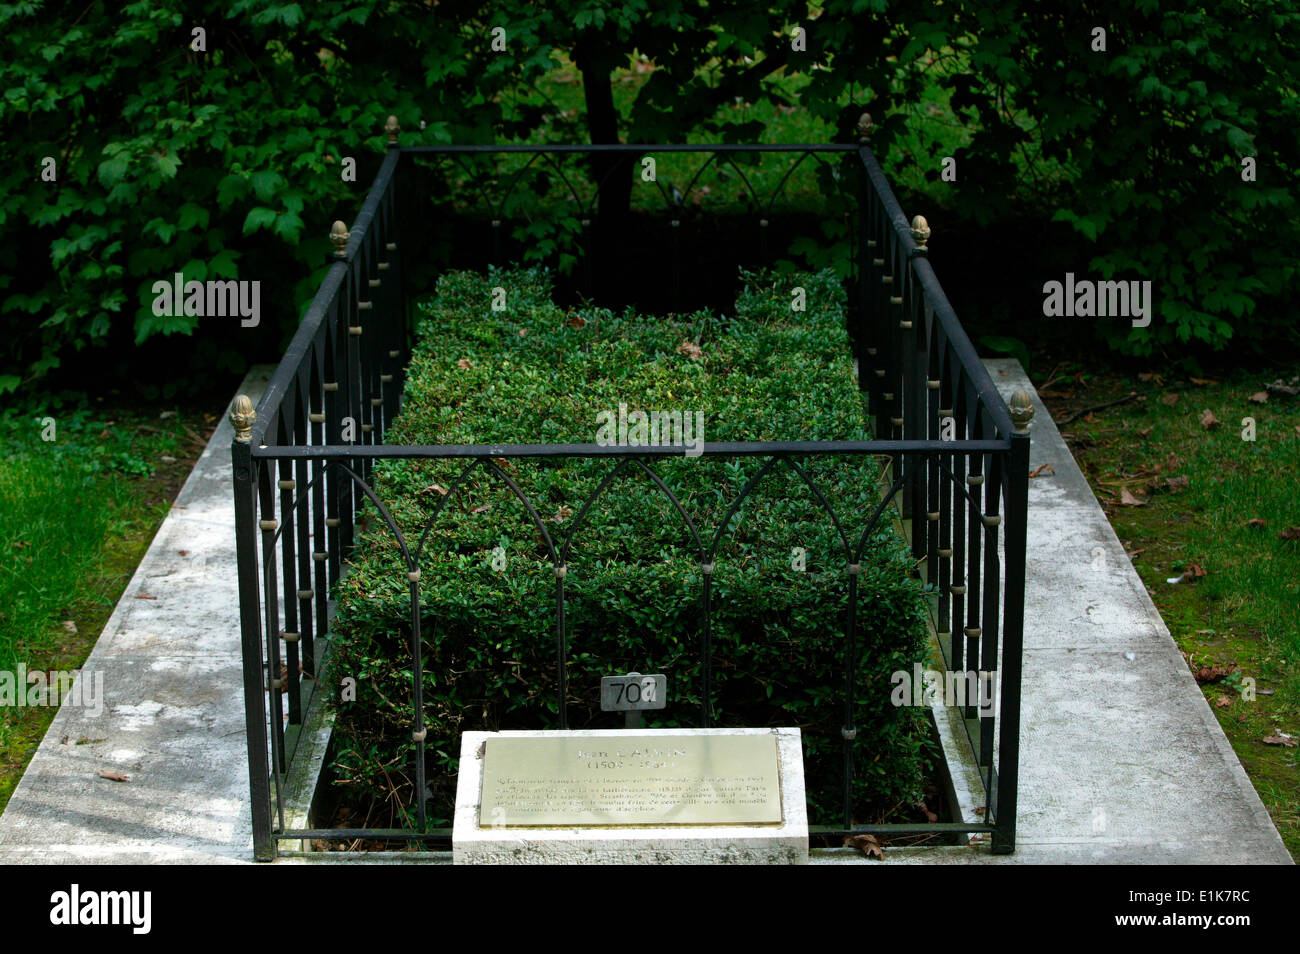 John Calvin's grave.  French reformer and theologian - Stock Image